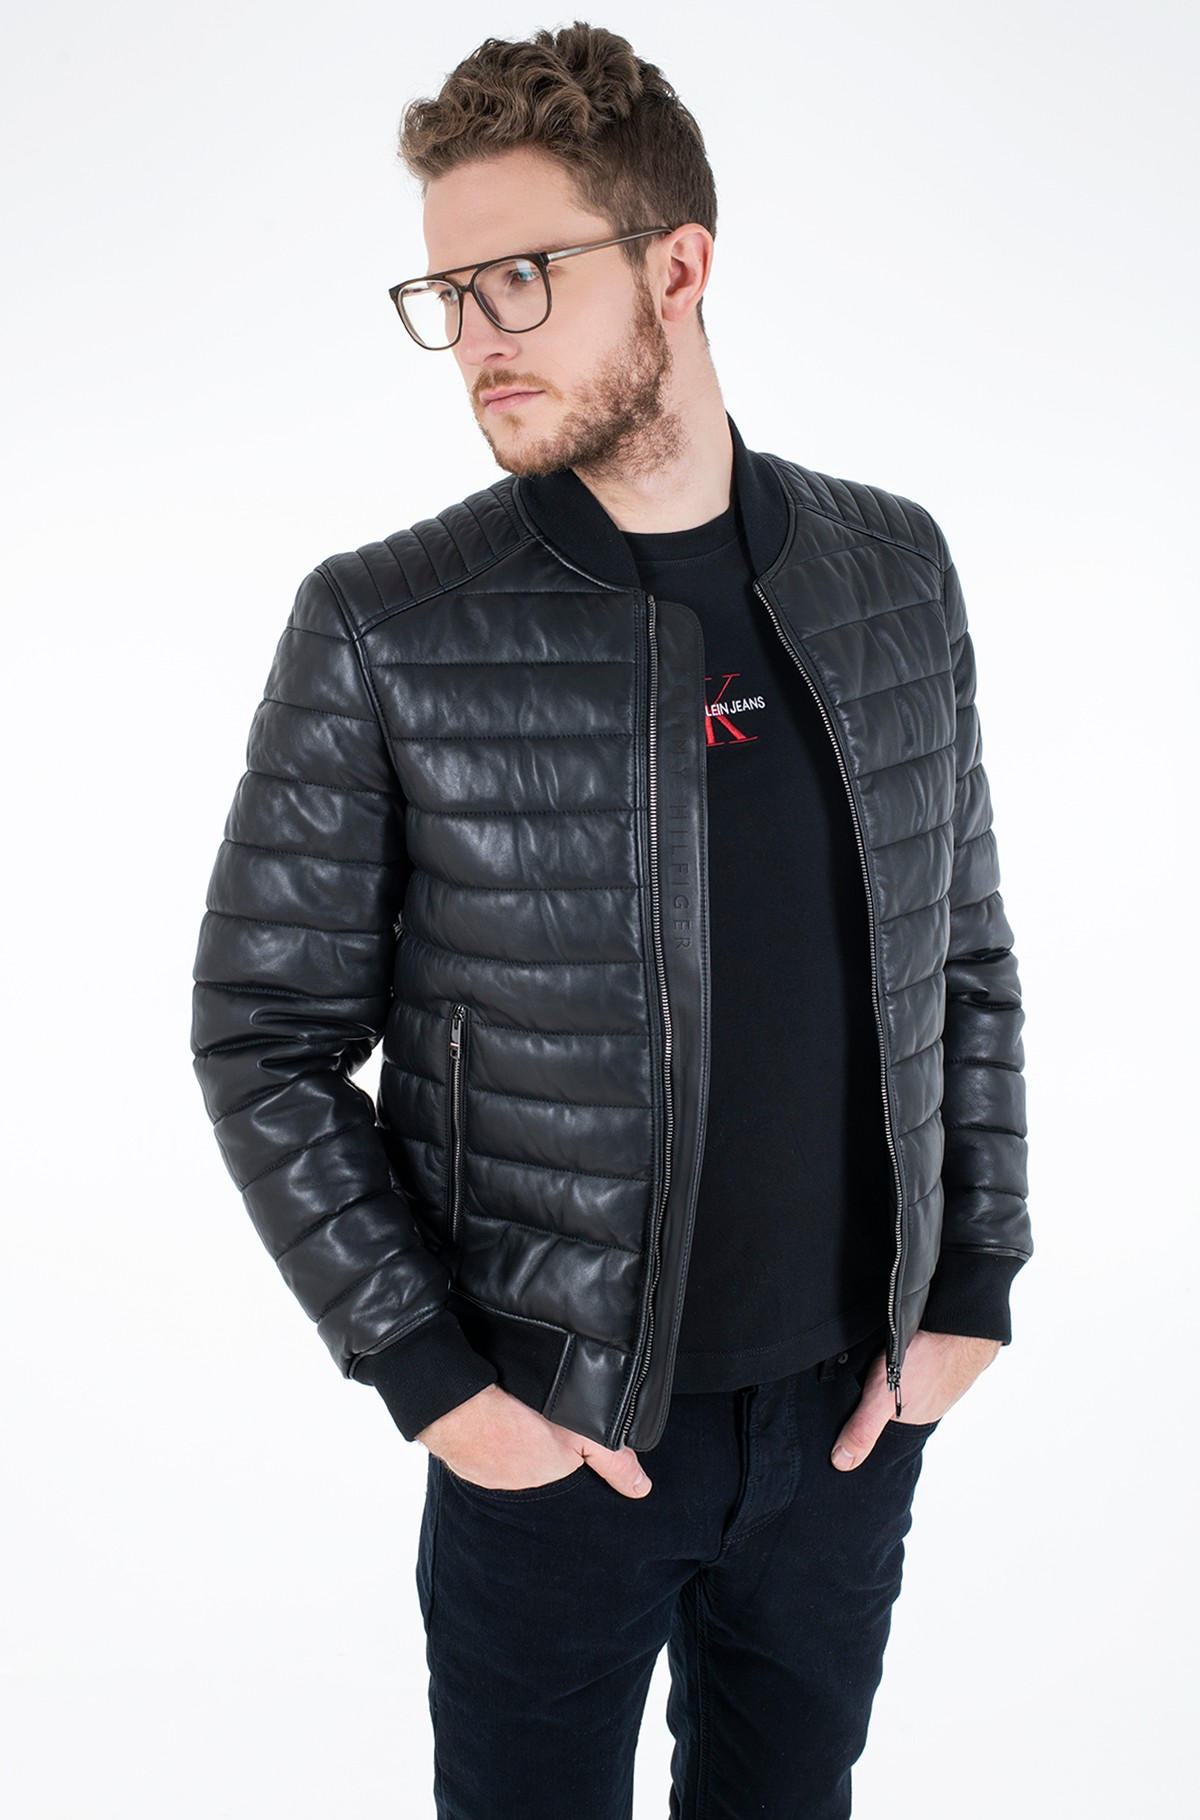 Jope 2 MB QUILTED LEATHER JACKET-full-1